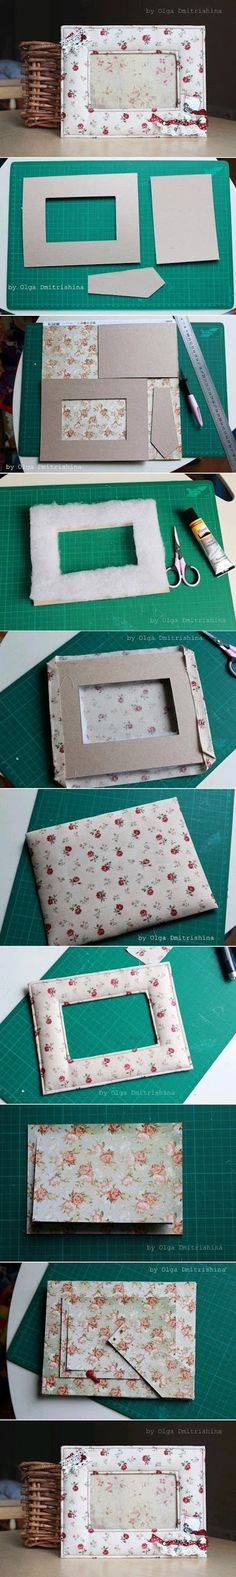 Easy Way To Make a Picture Frame #DIY